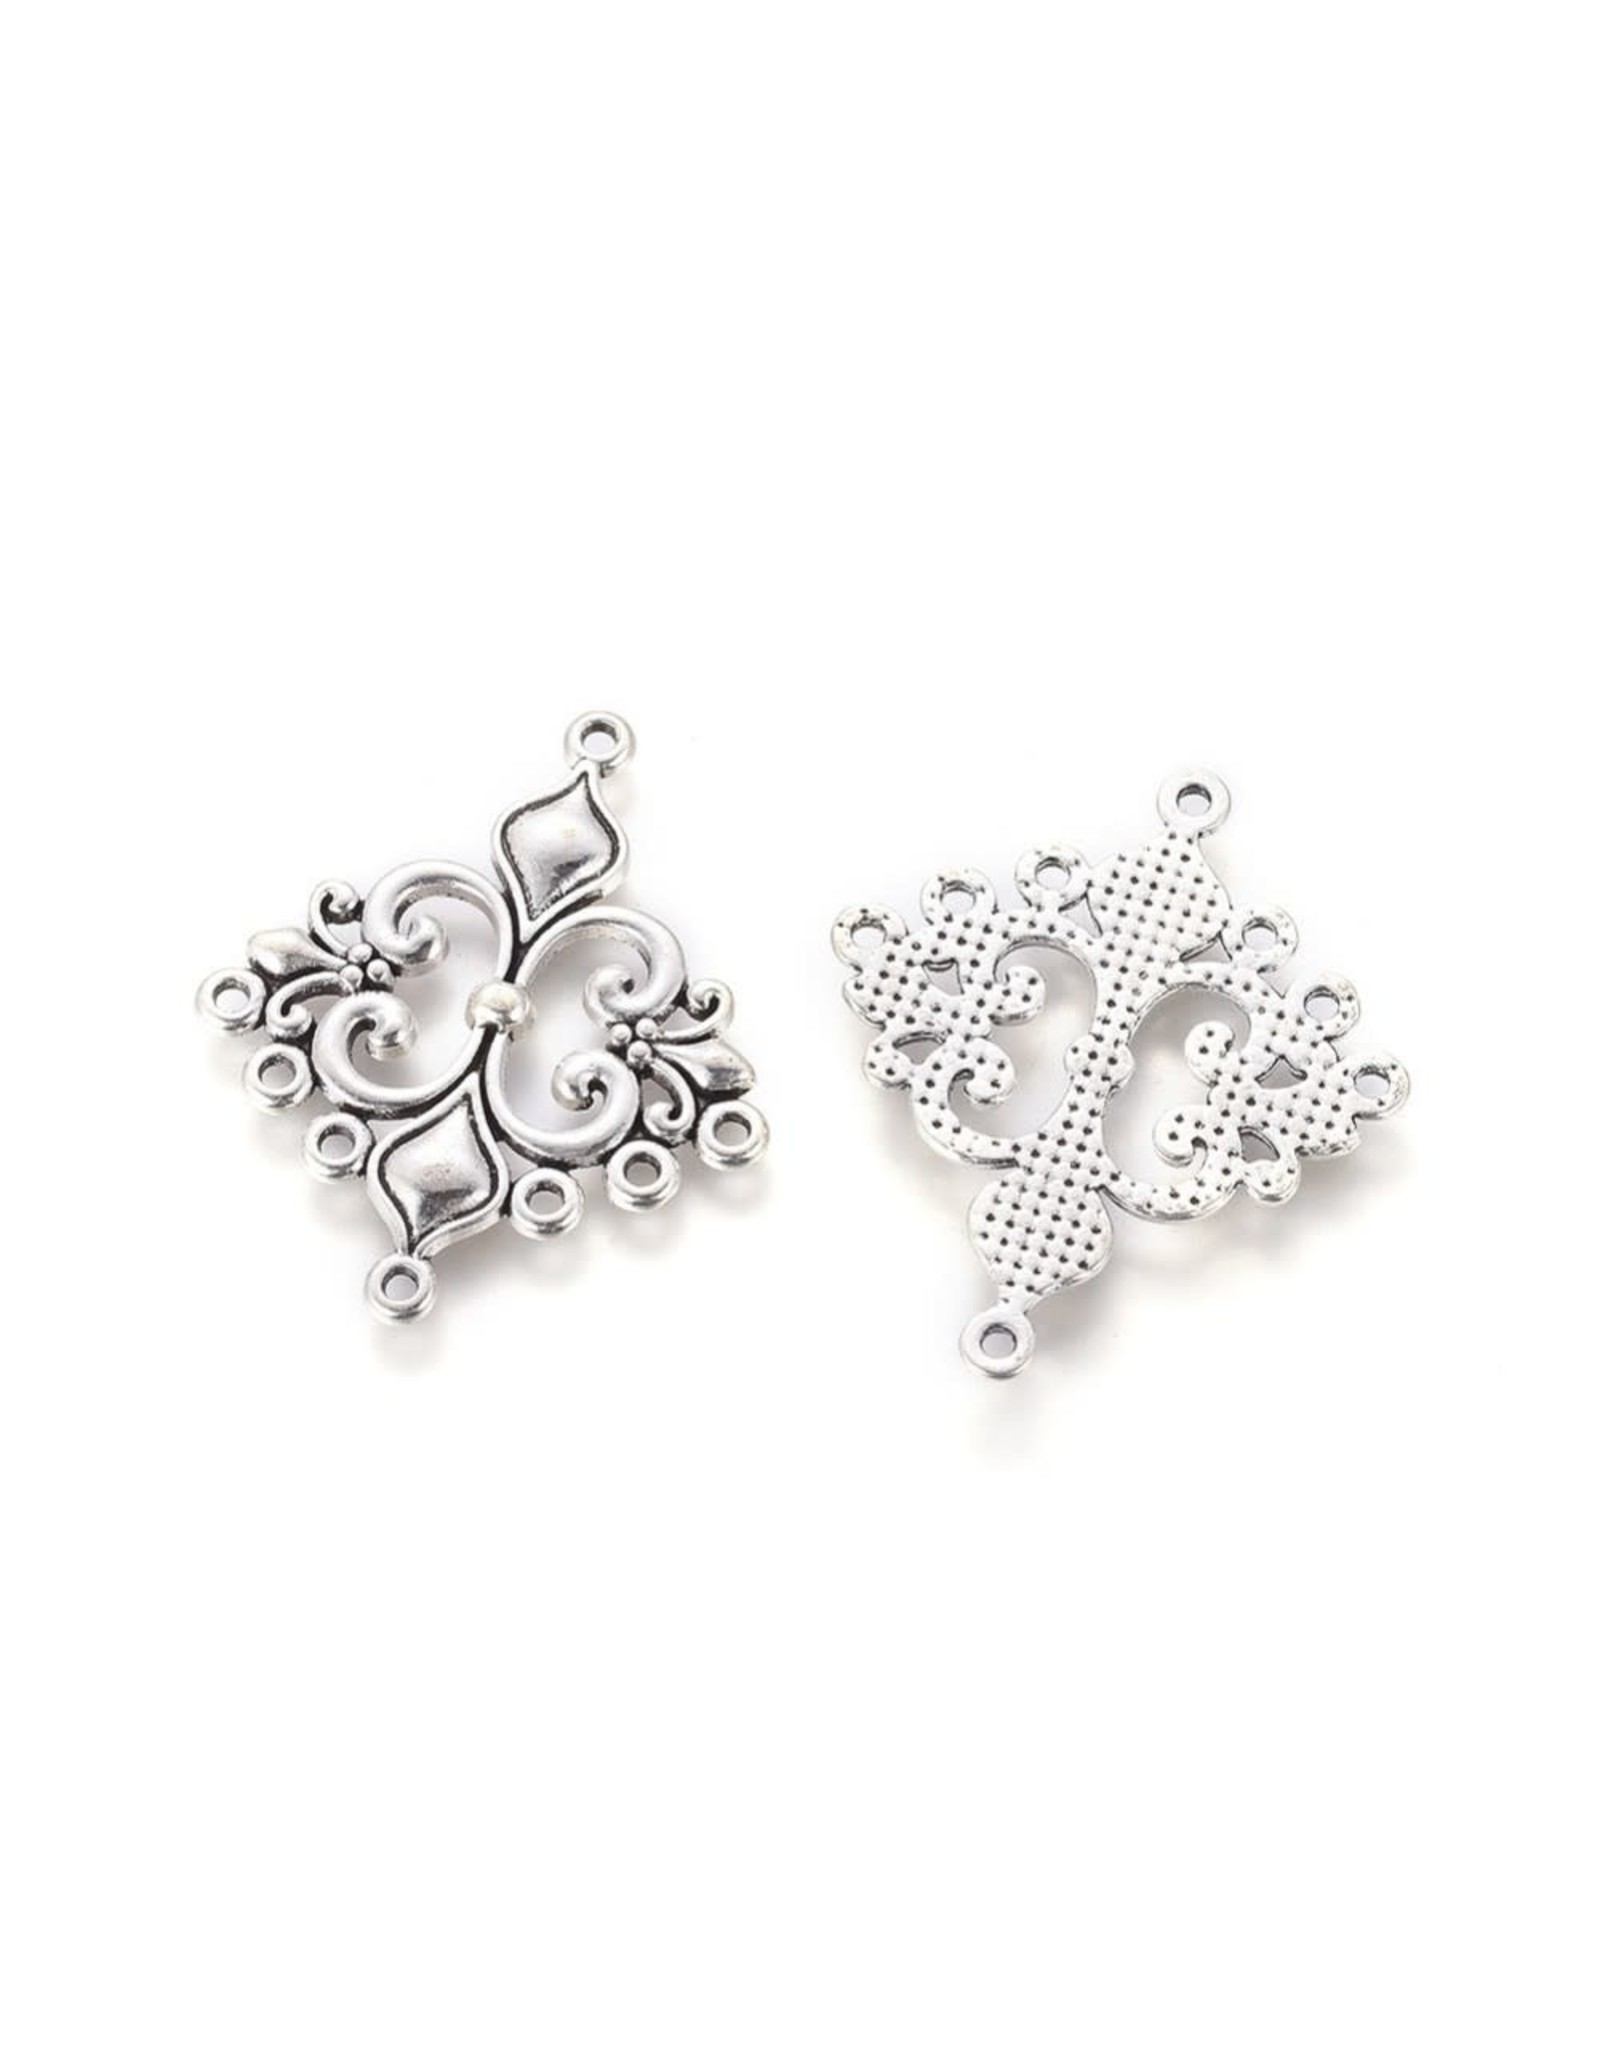 Diamond Link (1to7) 36x30mm Antique Silver  x10  NF